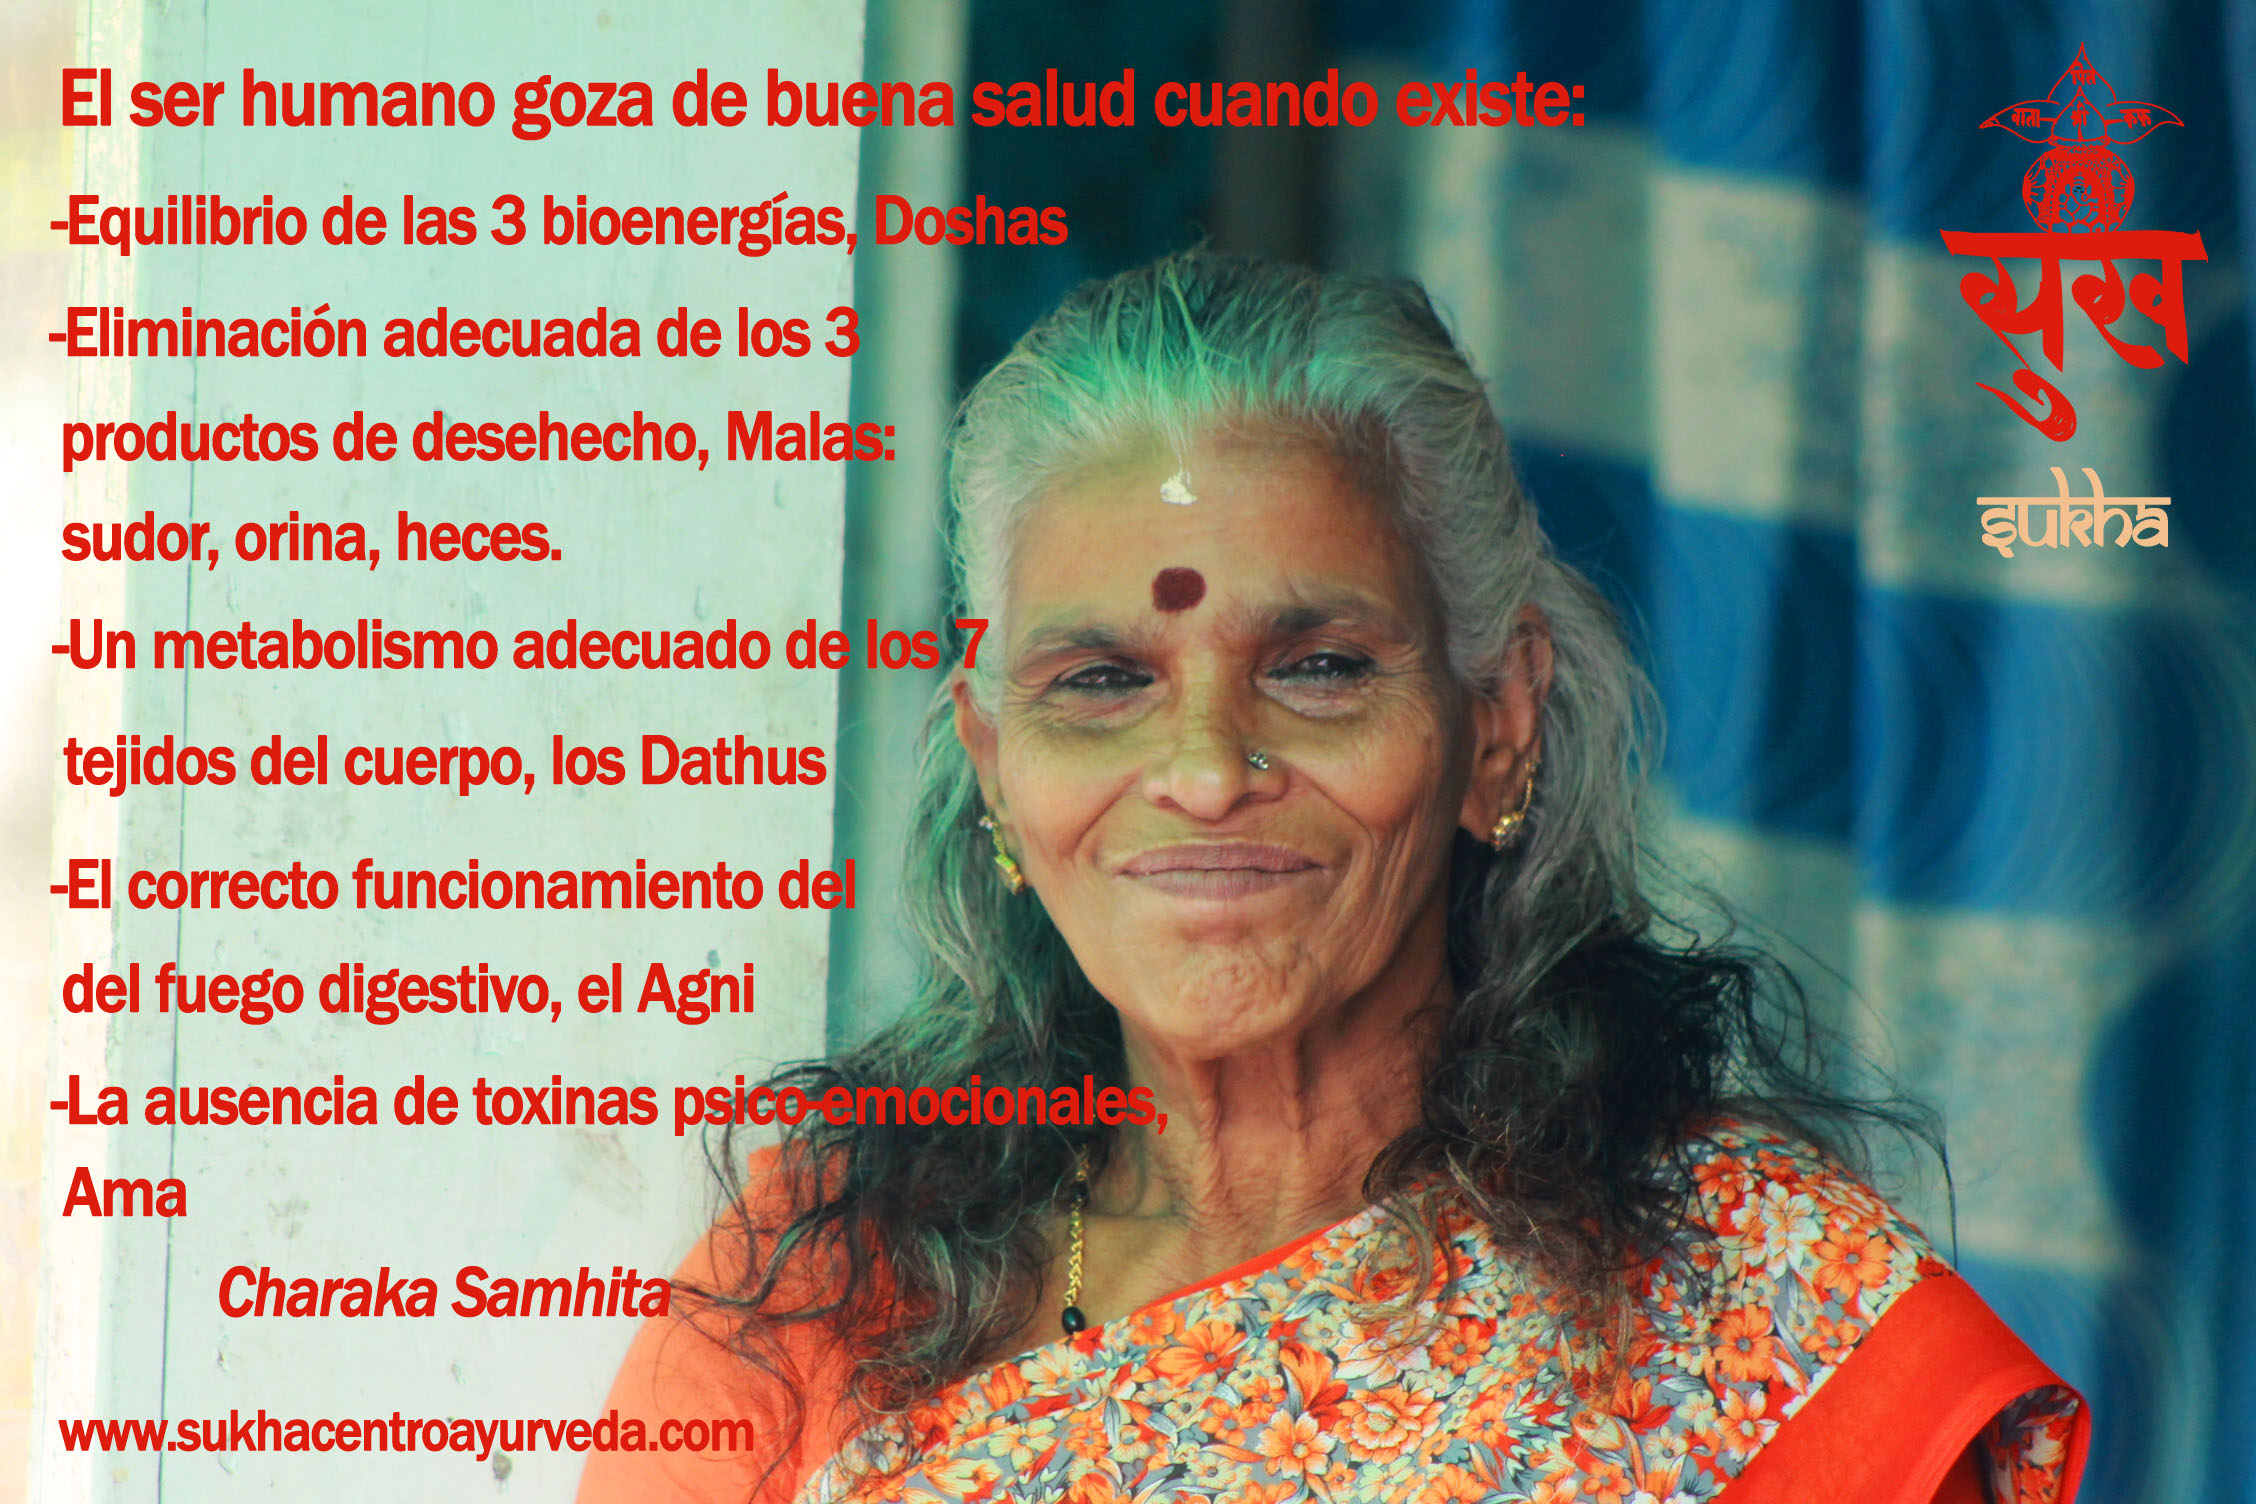 http://sukhacentroayurveda.files.wordpress.com/2014/04/characa-copia.jpg